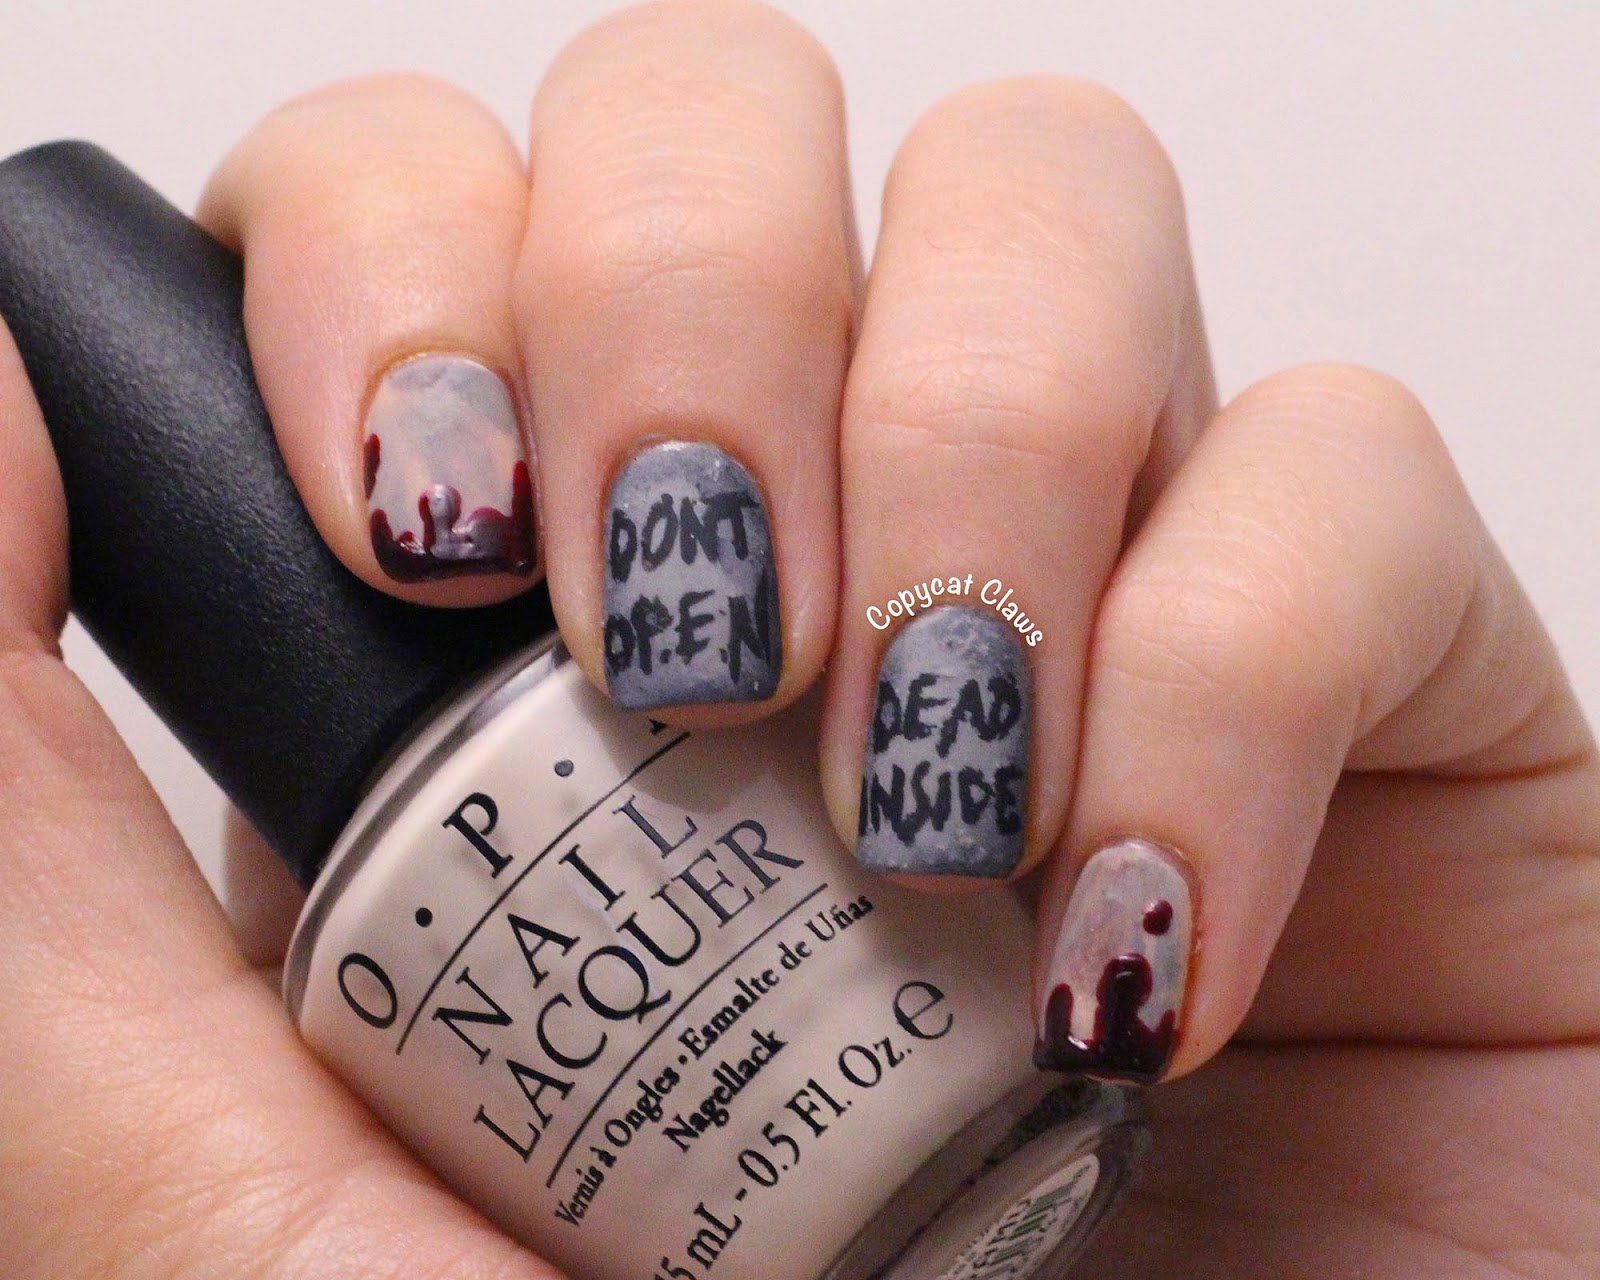 Copycat claws walking dead nails i wasnt sure what to do on my thumb so i added an creepy hand image from bundle monster bm h08 using konad black i love this image prinsesfo Choice Image